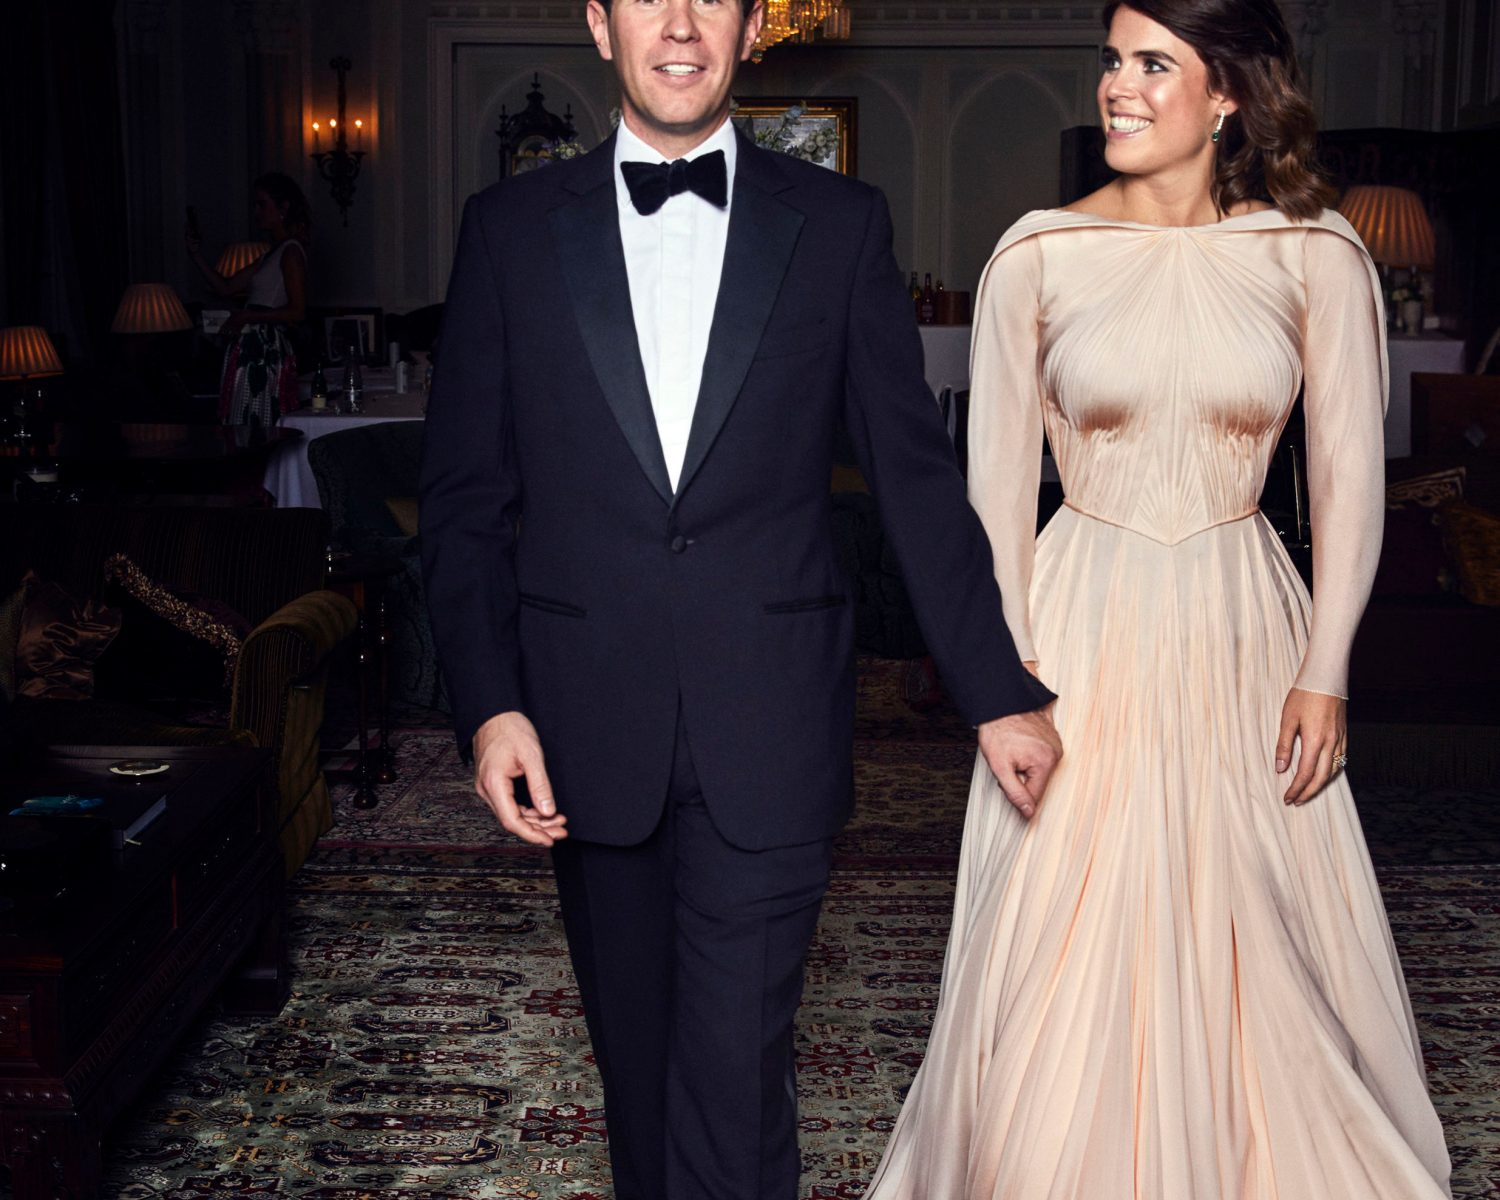 Zac Posen Shares Never-Before-Seen Photo of Princess Eugenie in Her Wedding Reception Gown